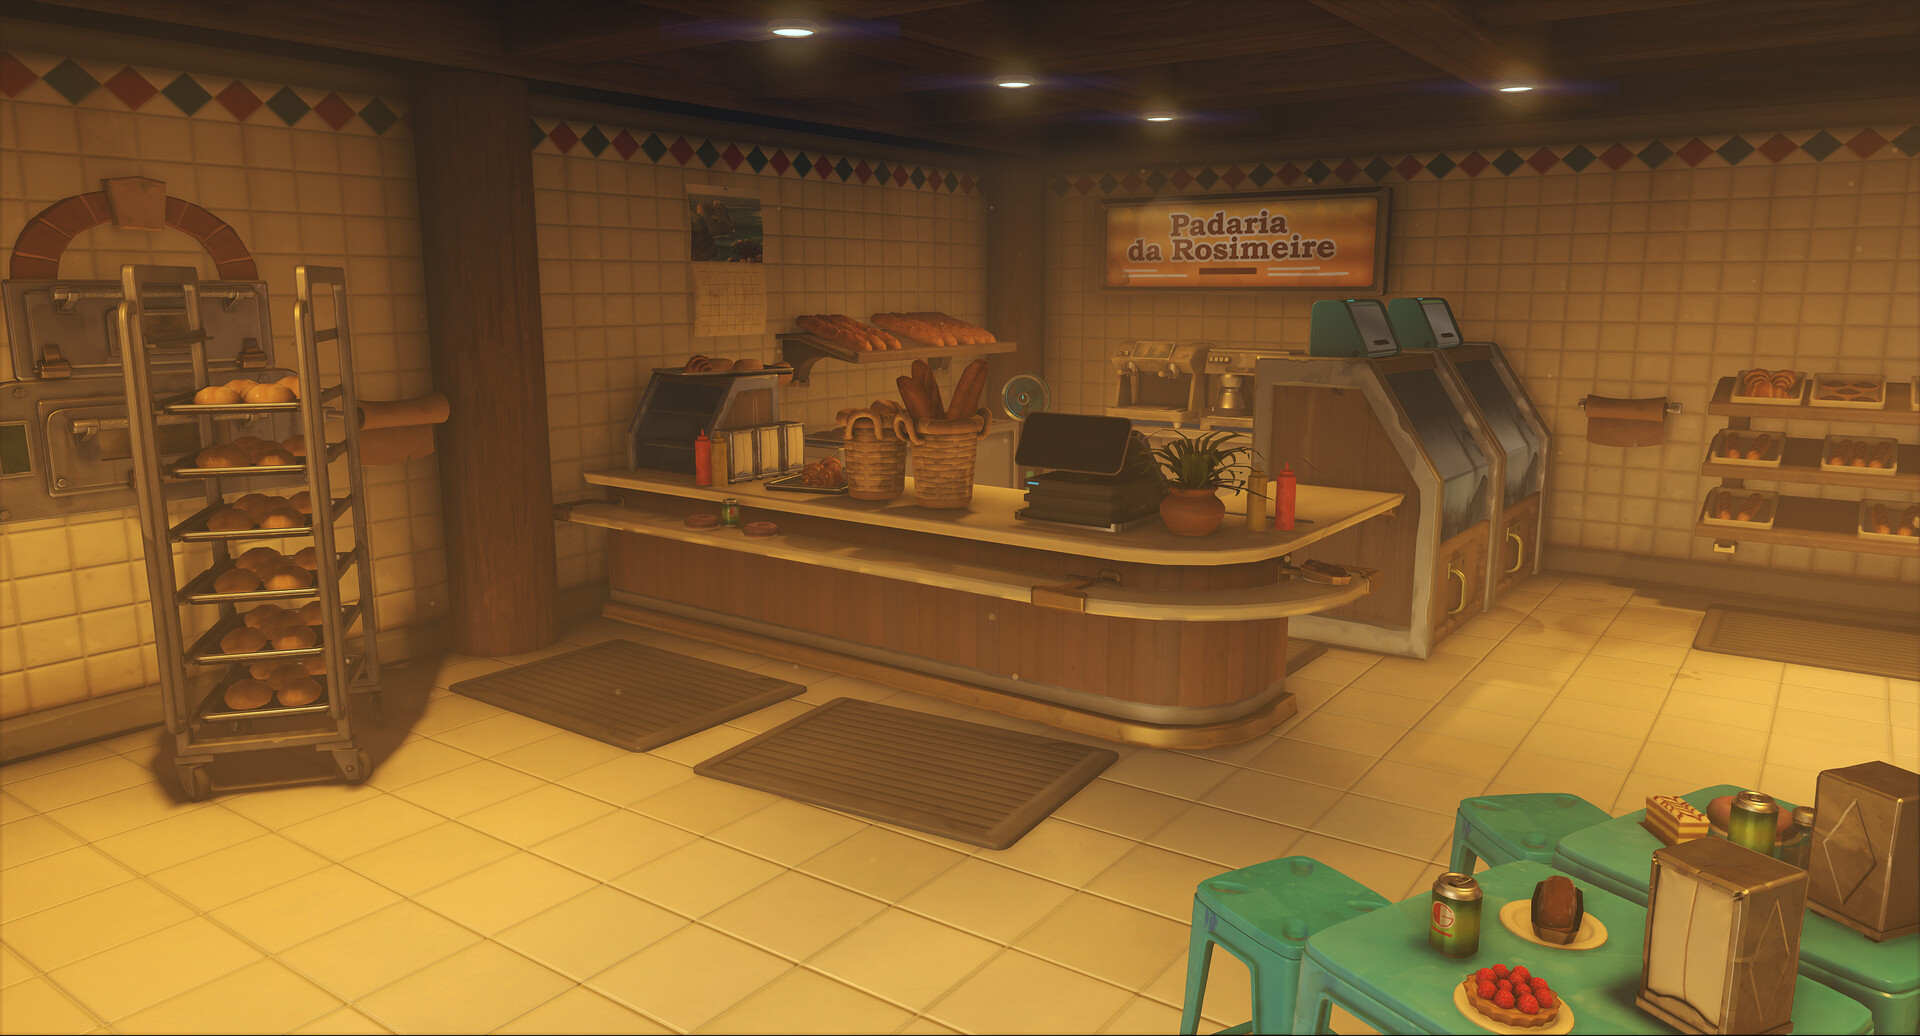 Helder pinto ow2 blizzcon 2019 screenshot maps rio pvp bakery